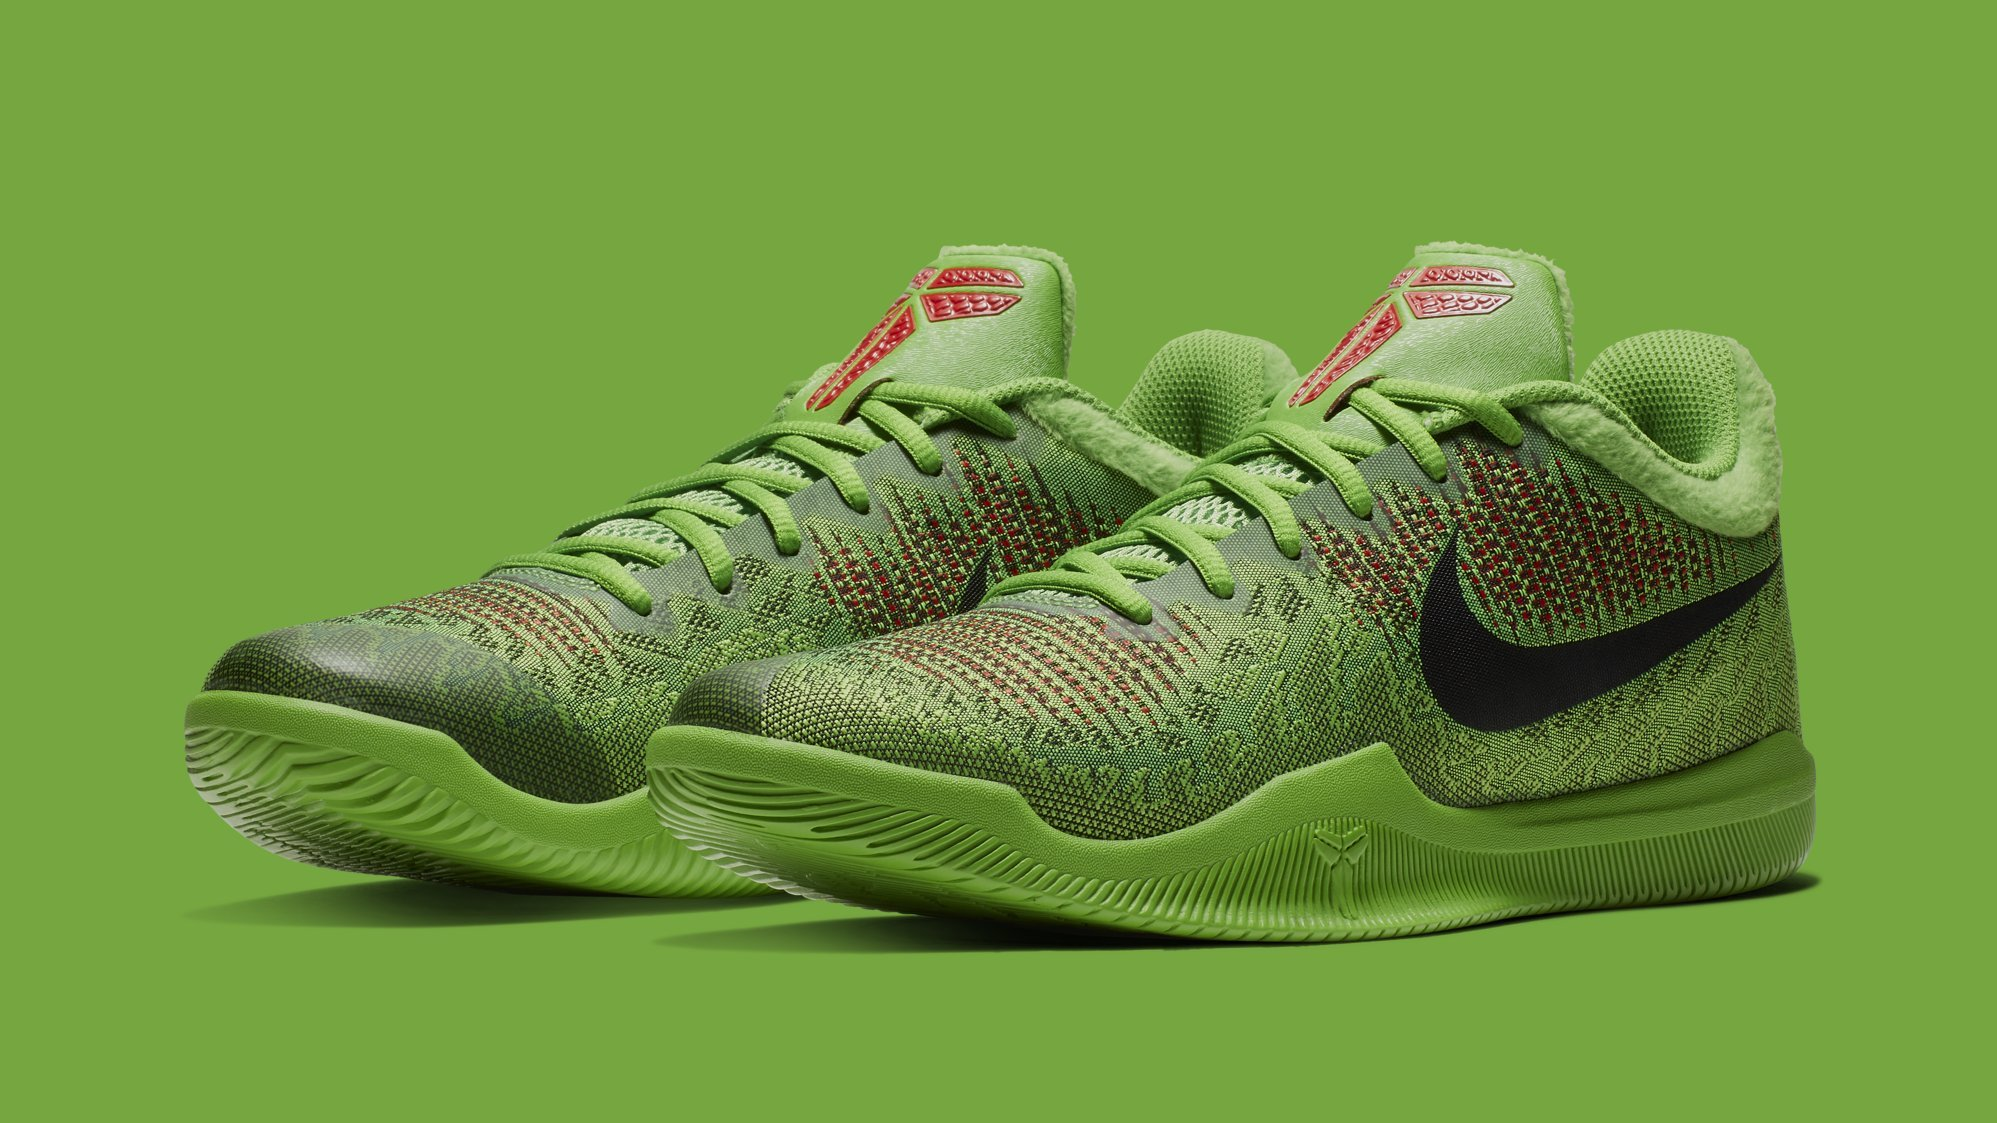 low priced 15345 590eb Nike Mamba Rage EP  Electric Green  908974-300   Sole Collector